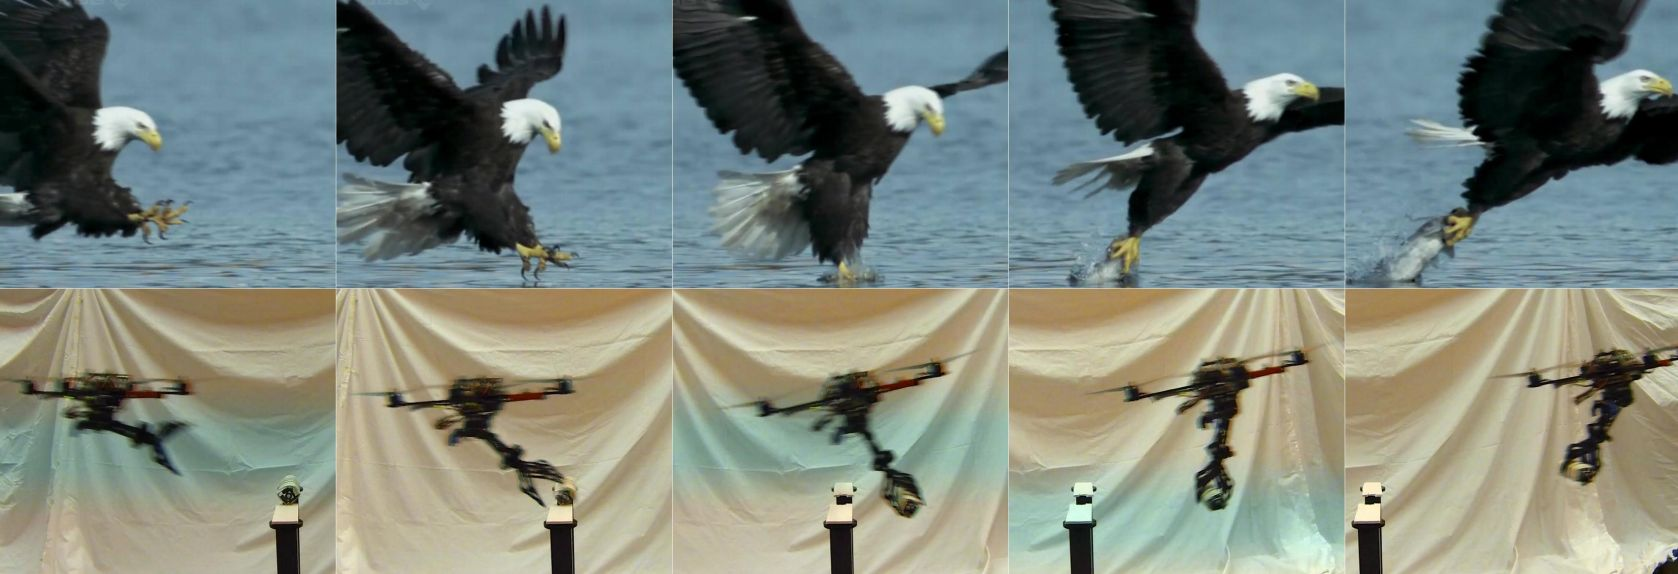 Eagle Eyeing Researchers Design Swooping Quadrotors With Claws W Easy Lawnmower Physics Video